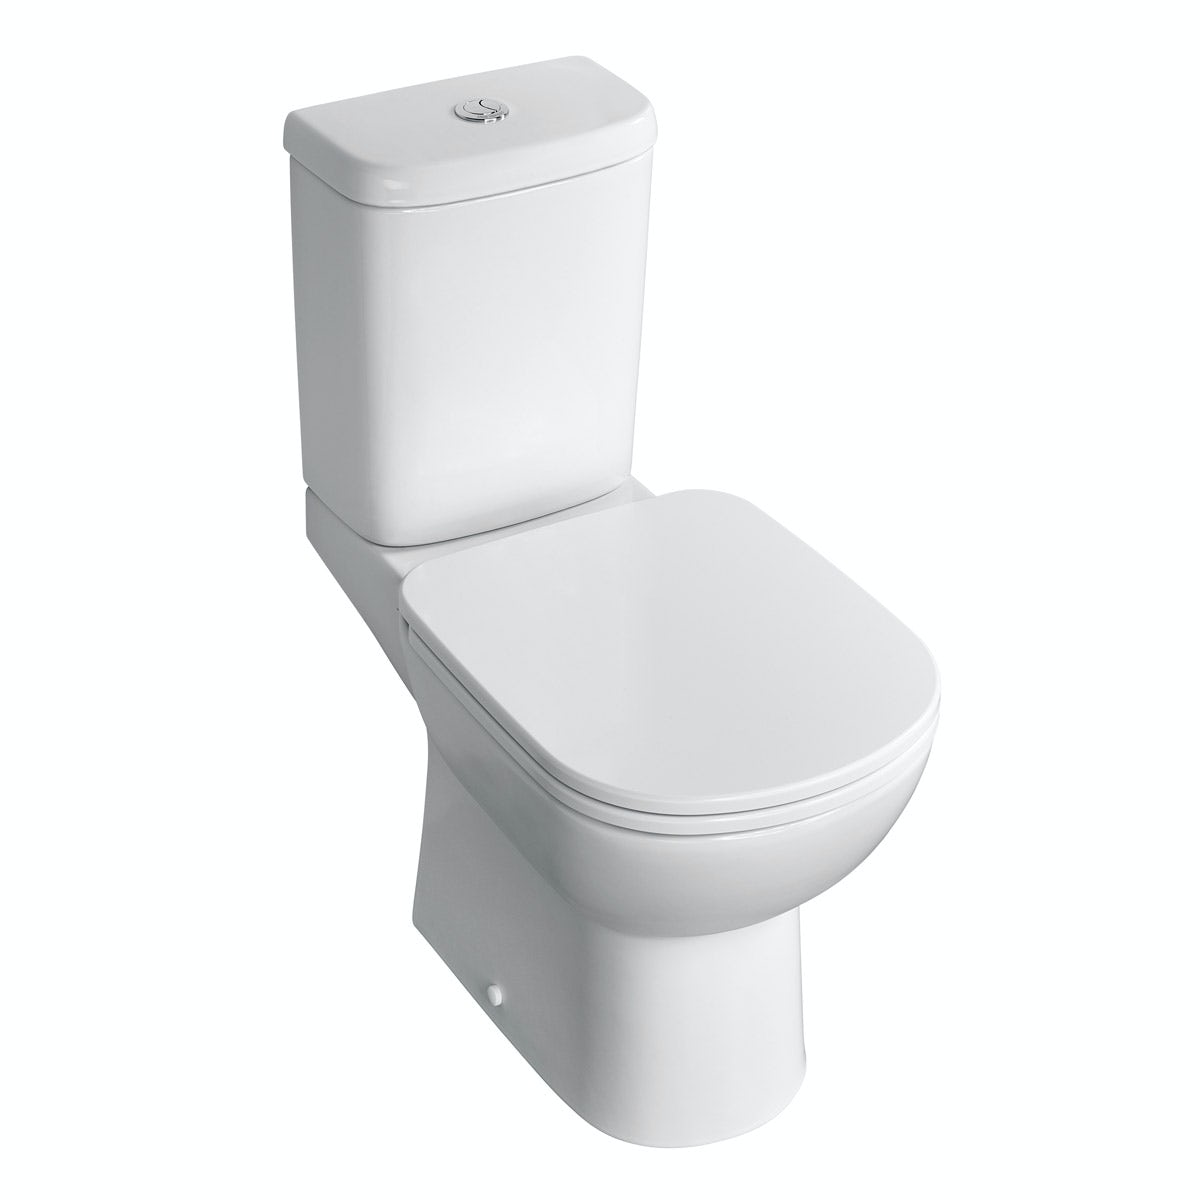 Ideal Standard Tempo close coupled toilet with soft close seat